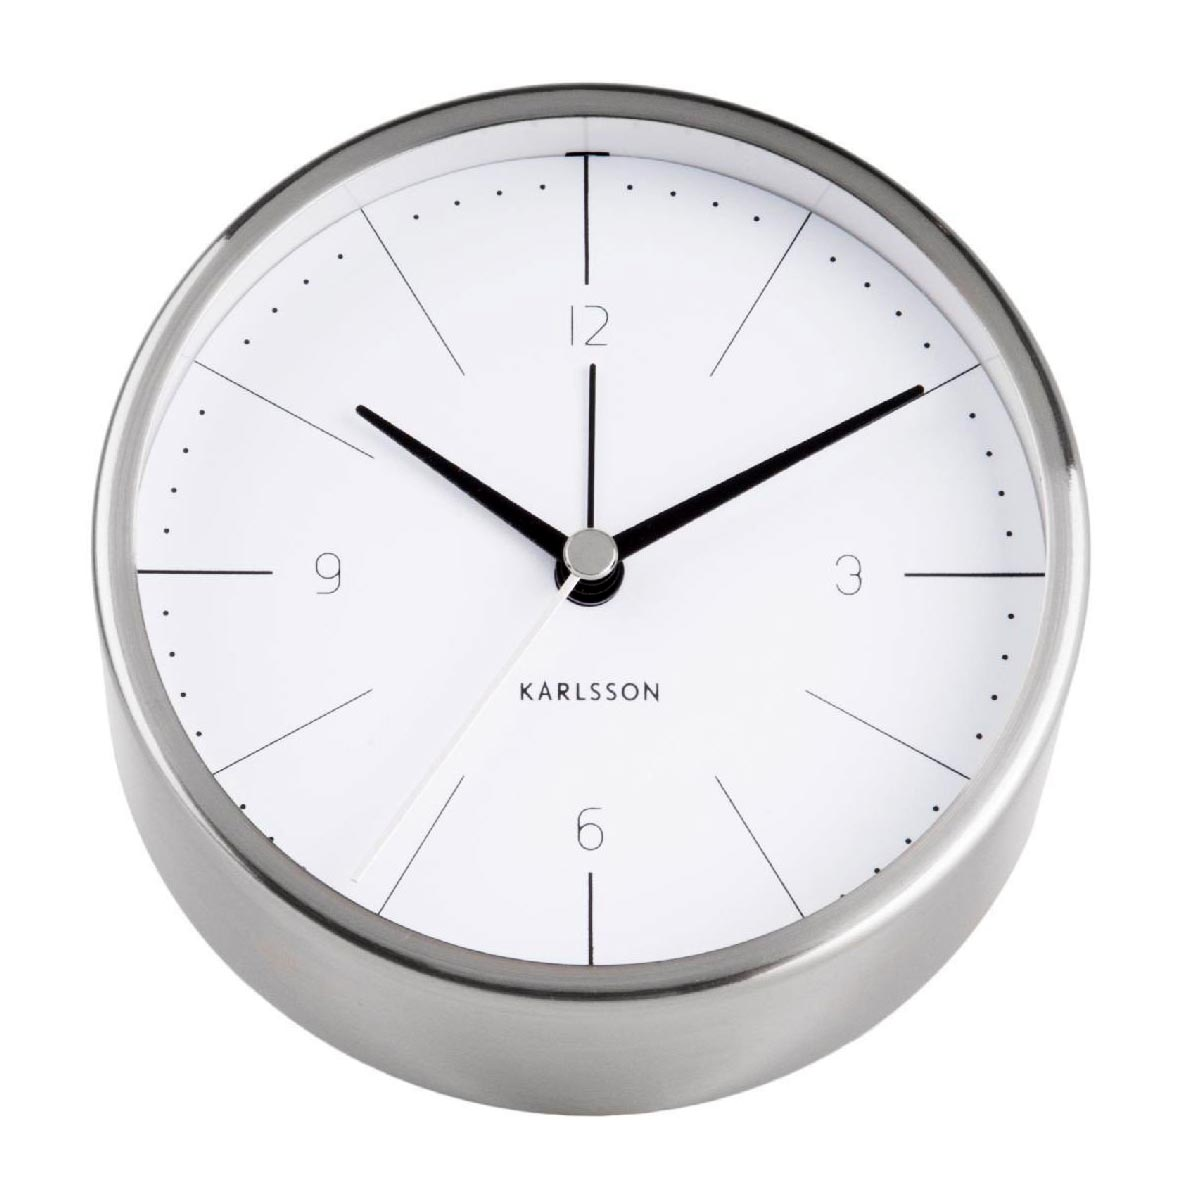 KARLSSON Normann alarm clock steel case white dial | The Design Gift Shop